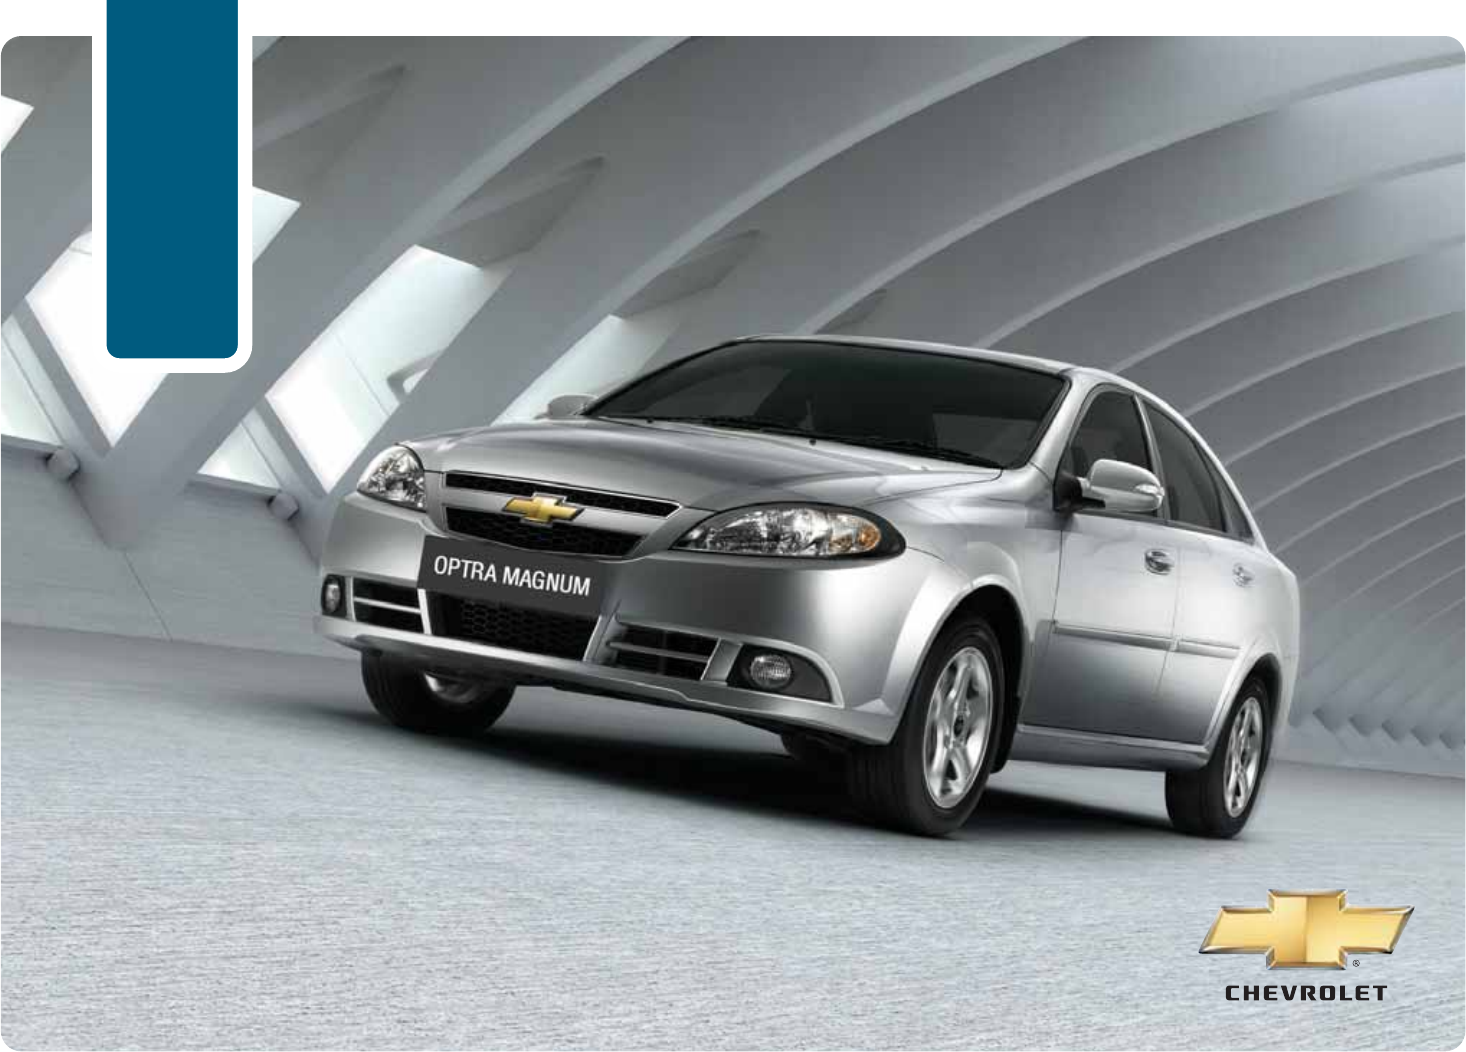 Chevrolet Automobile Optra Magnum User Guide | ManualsOnline.com on chevrolet kalos, chevrolet trax, chevrolet sonic, chevrolet nexia, chevrolet avalanche, chevrolet lanos, chevrolet tracker, chevrolet corsa, chevrolet orlando, chevrolet enjoy, chevrolet llv, chevrolet astra, chevrolet zafira, chevrolet epica, chevrolet nubira, chevrolet lacetti, chevrolet forward control, chevrolet sail, chevrolet captiva, chevrolet rezzo,